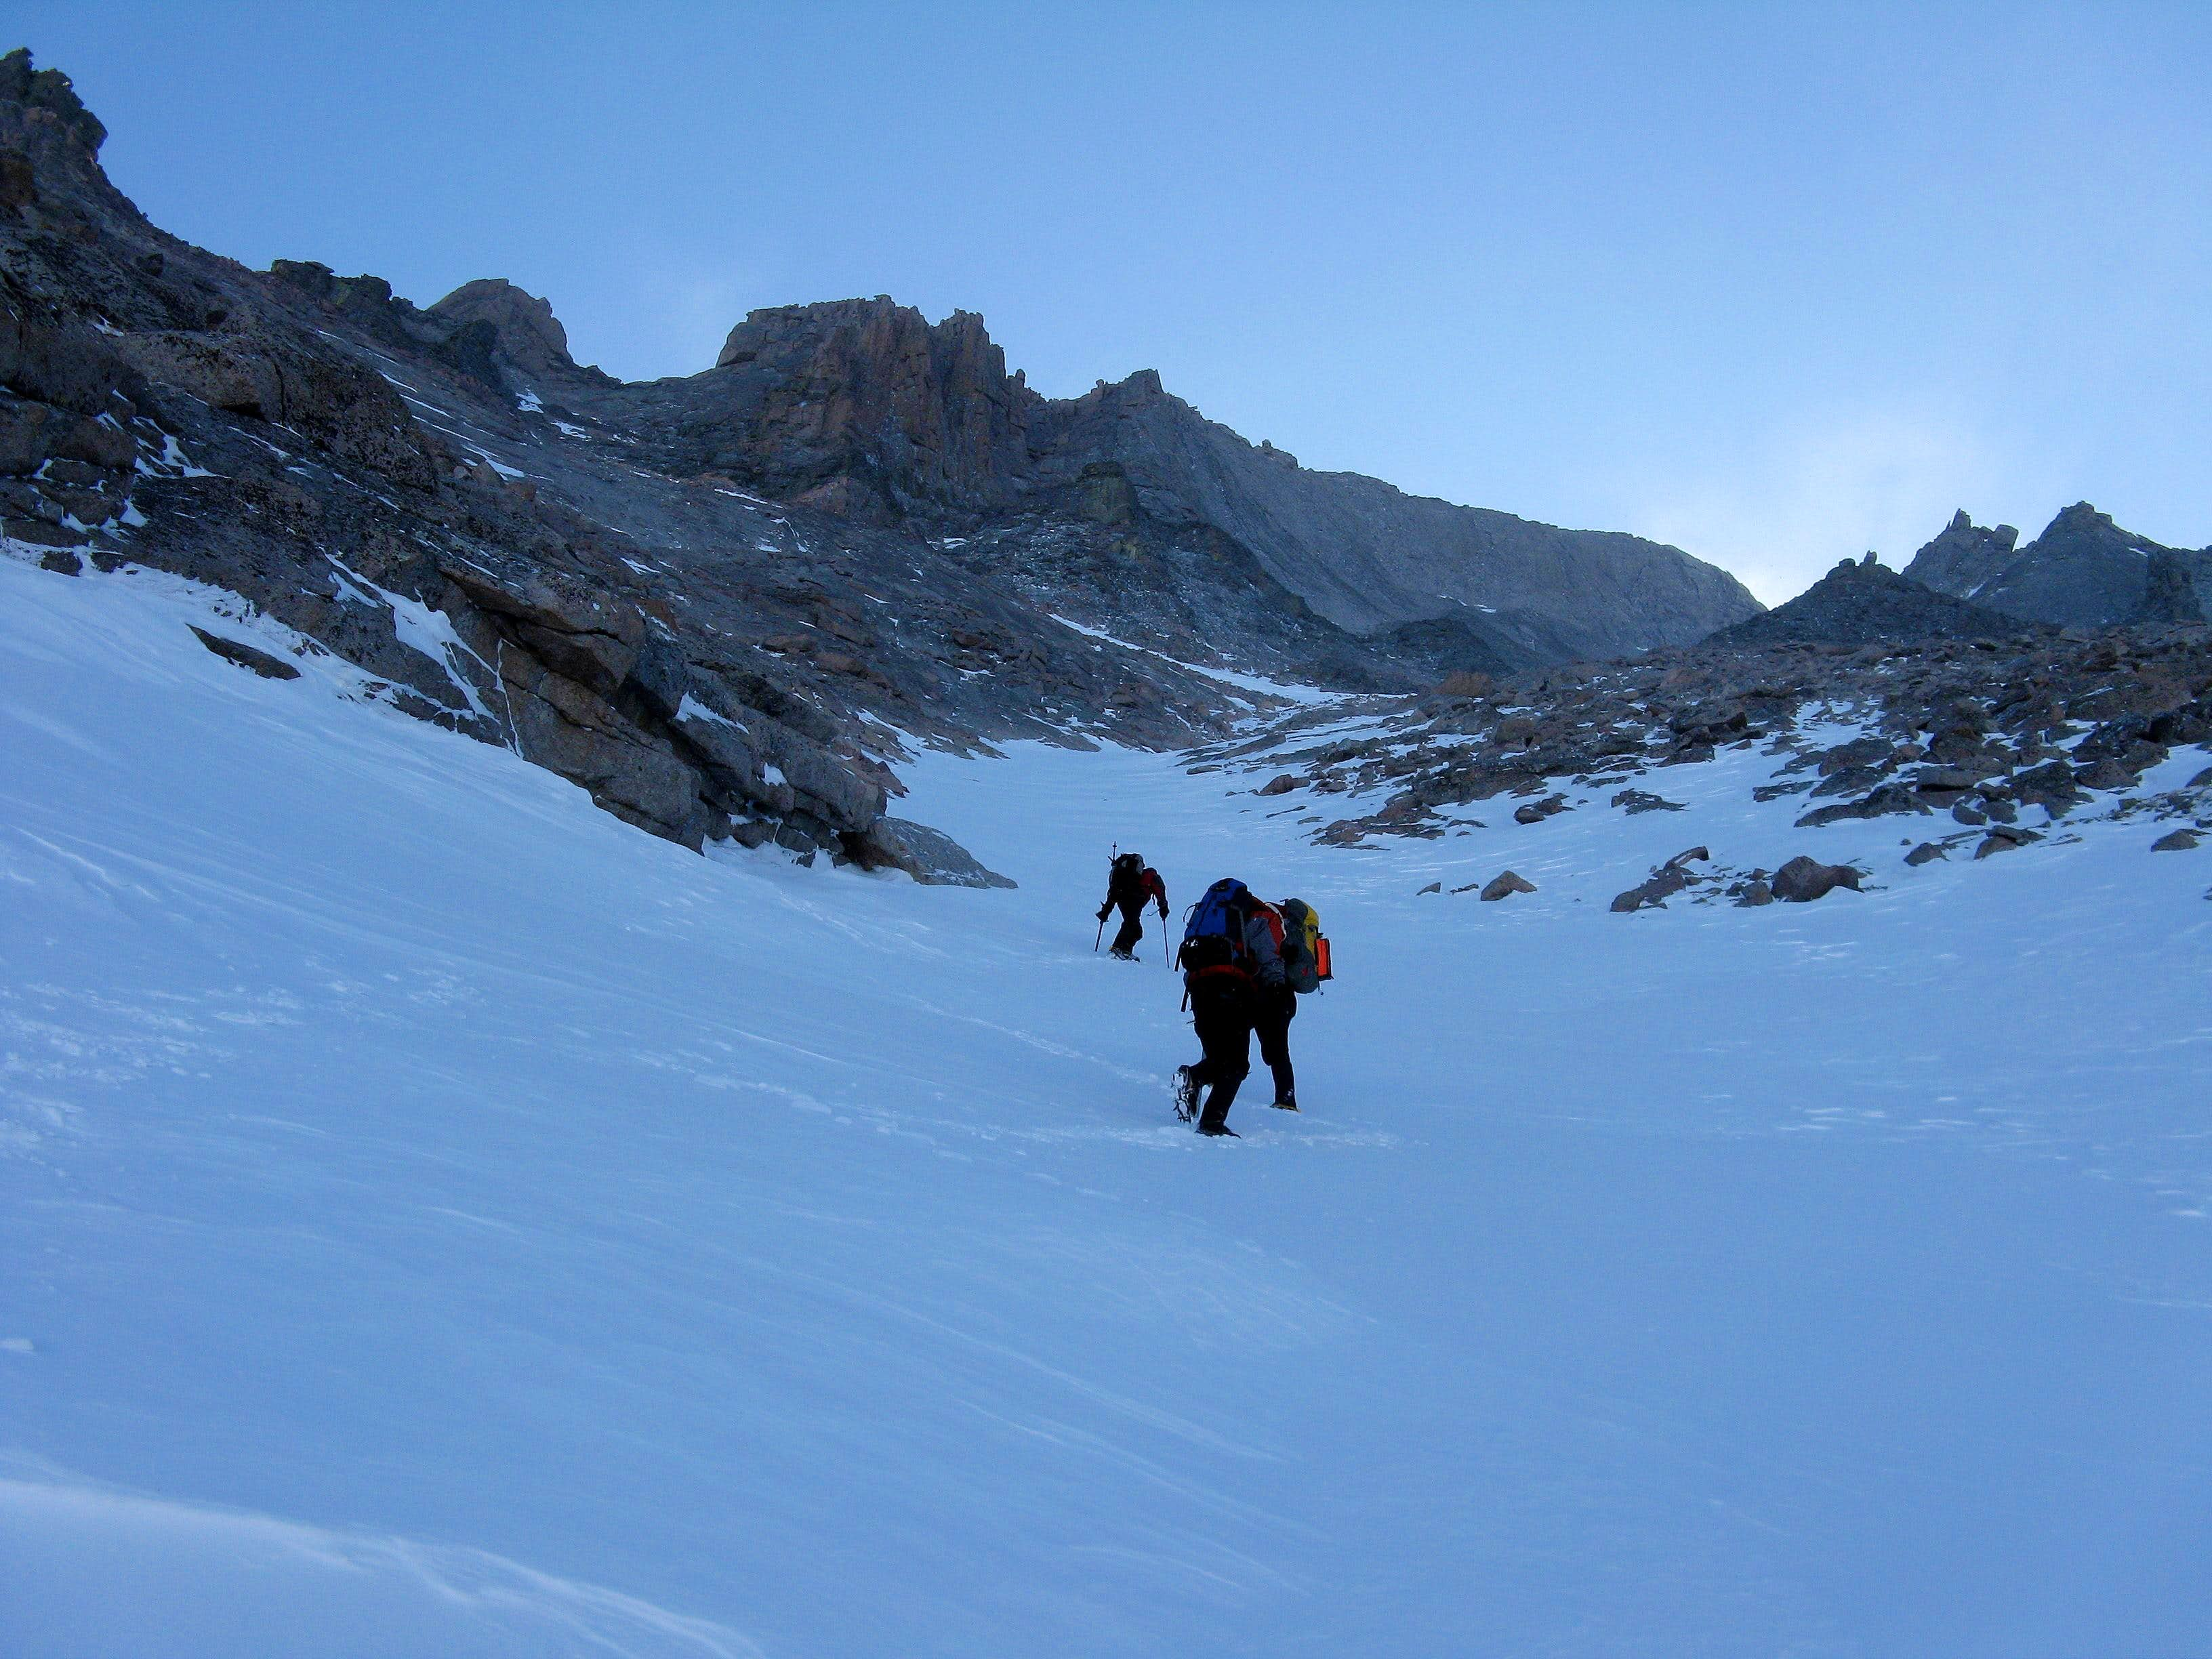 Longs Peak via the Trough in Winter: A Test of Fortitude